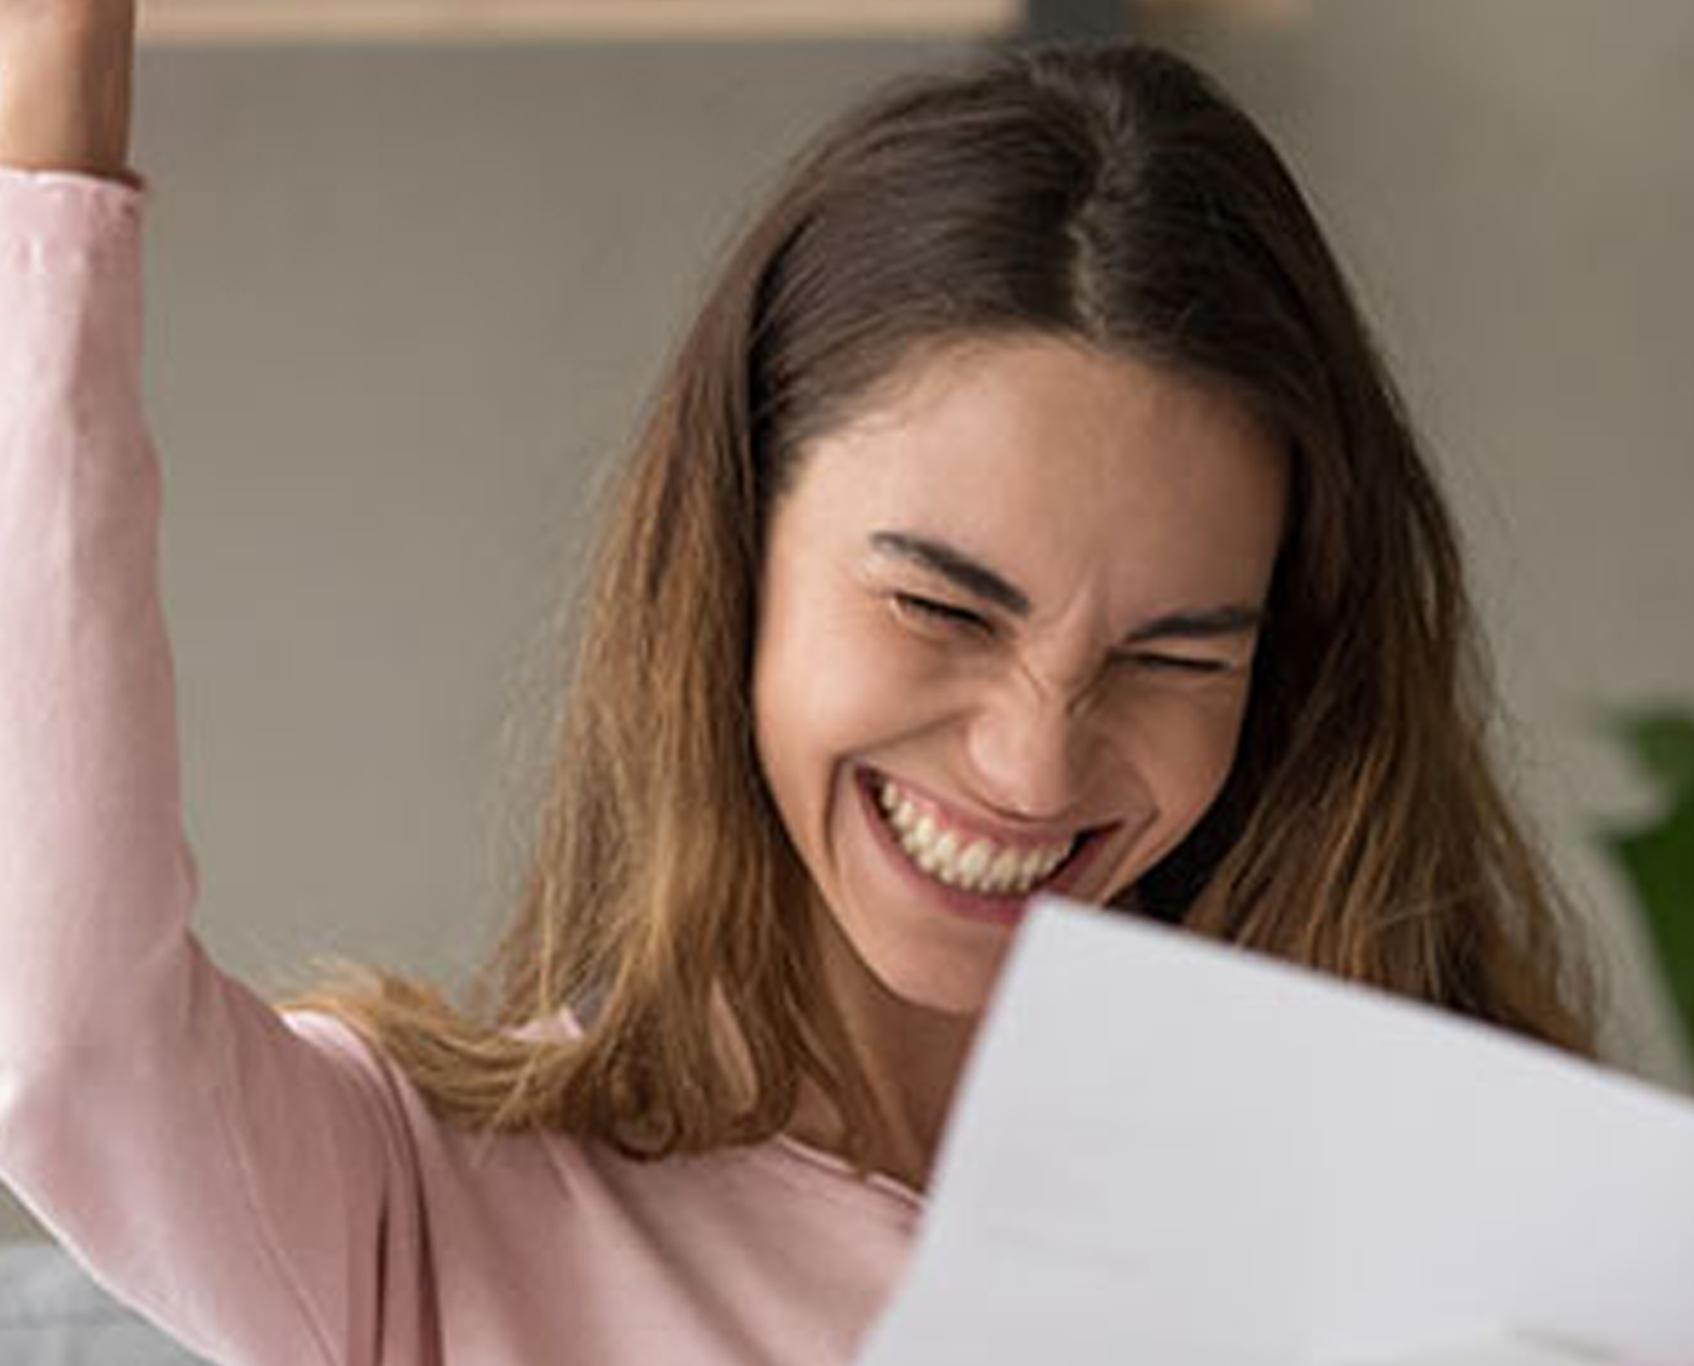 woman smiles in celebration as she looks at piece of paper